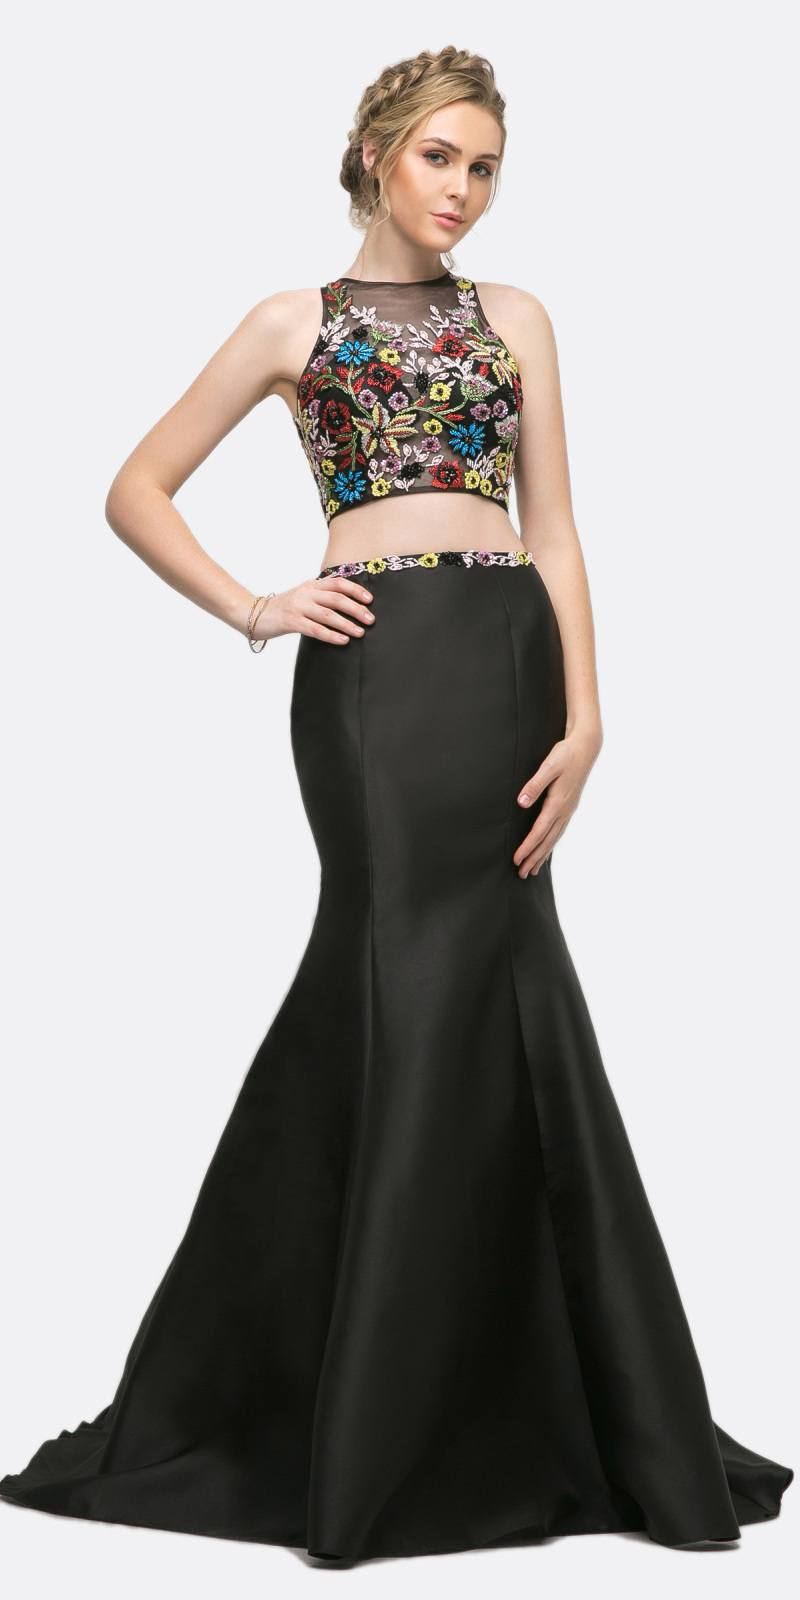 b559e9eed836 Cinderella Divine 84267 Two Piece Mermaid Dress Black Mikado Skirt Keyhole  Back ...